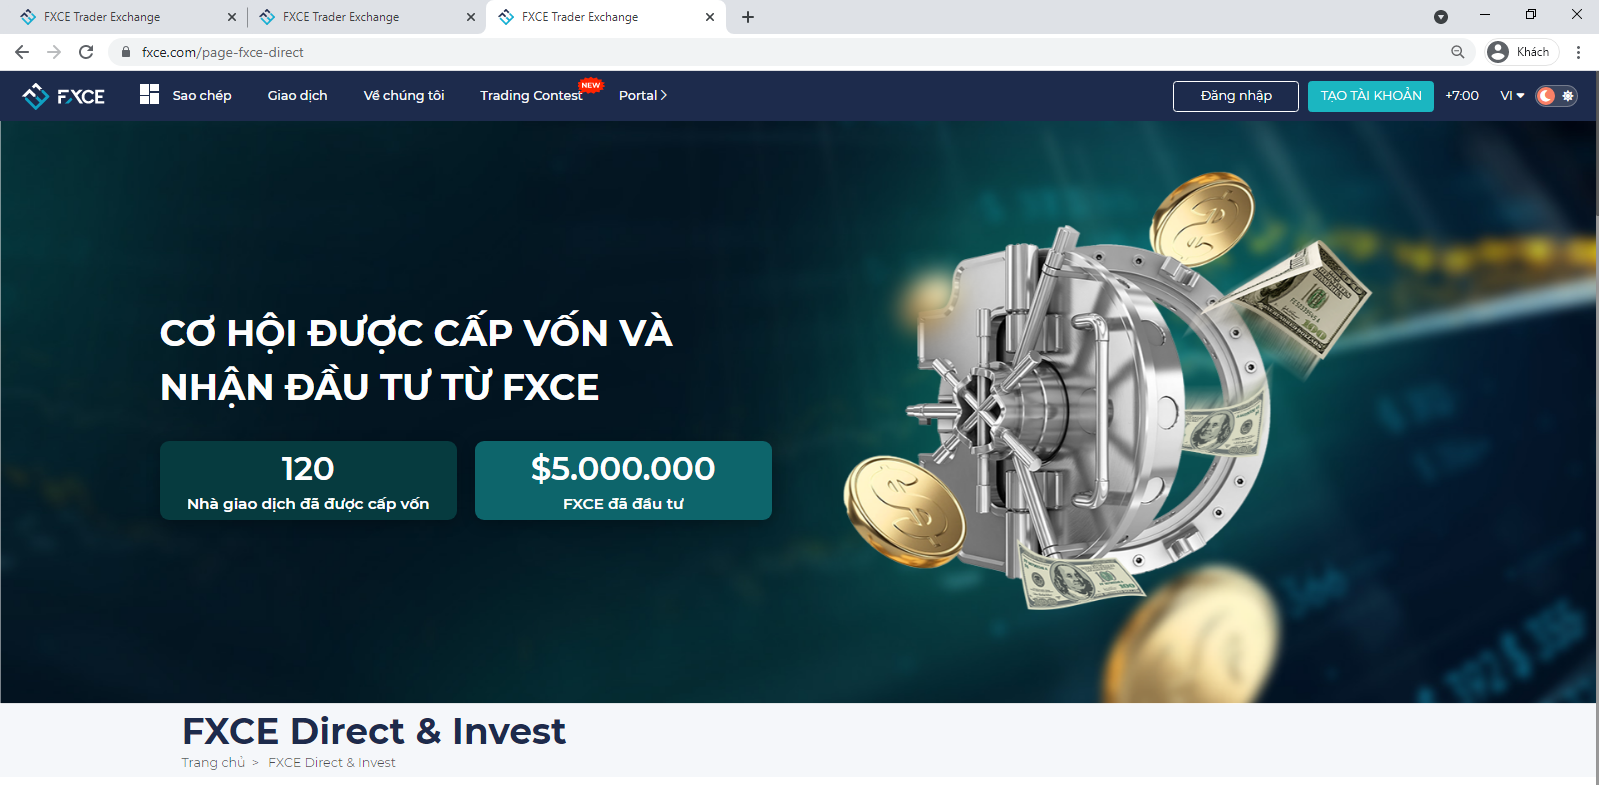 fxce direct and invest